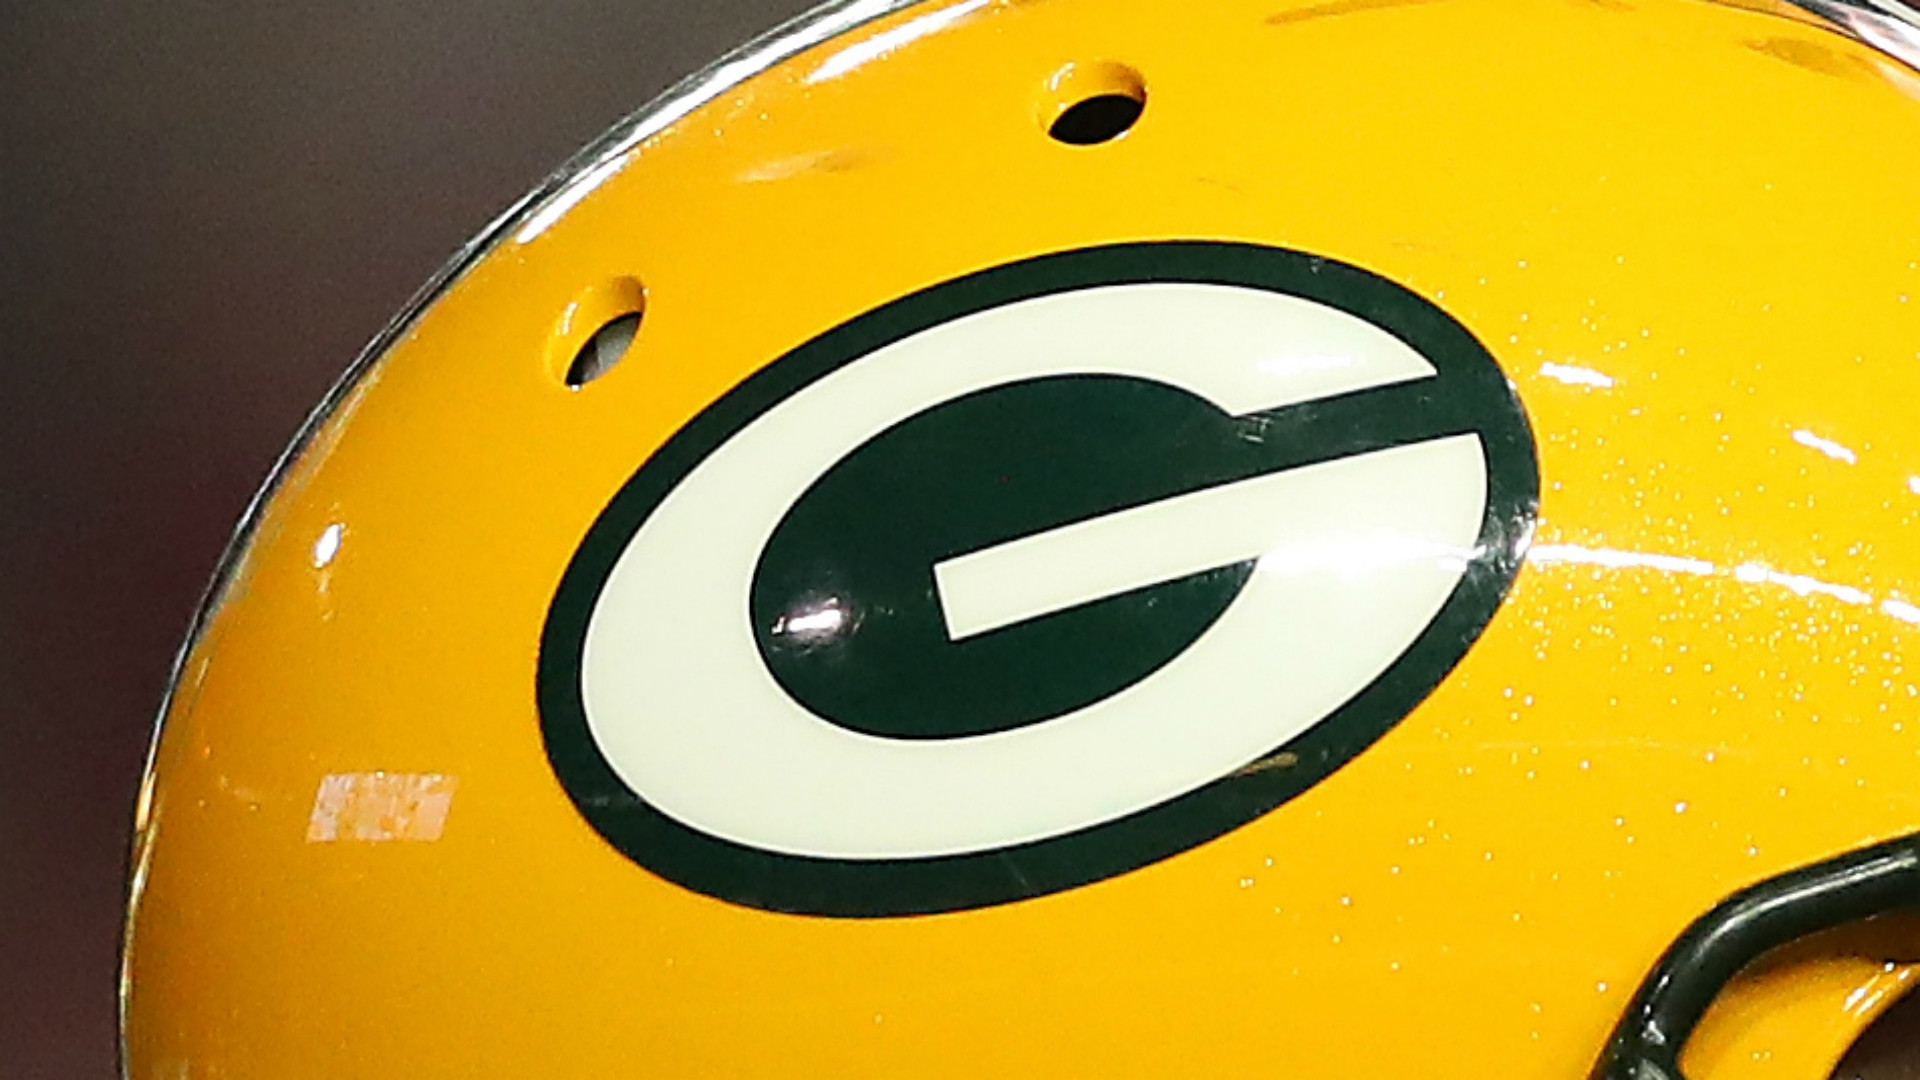 1920x1080 One roster move that could save Packers this season